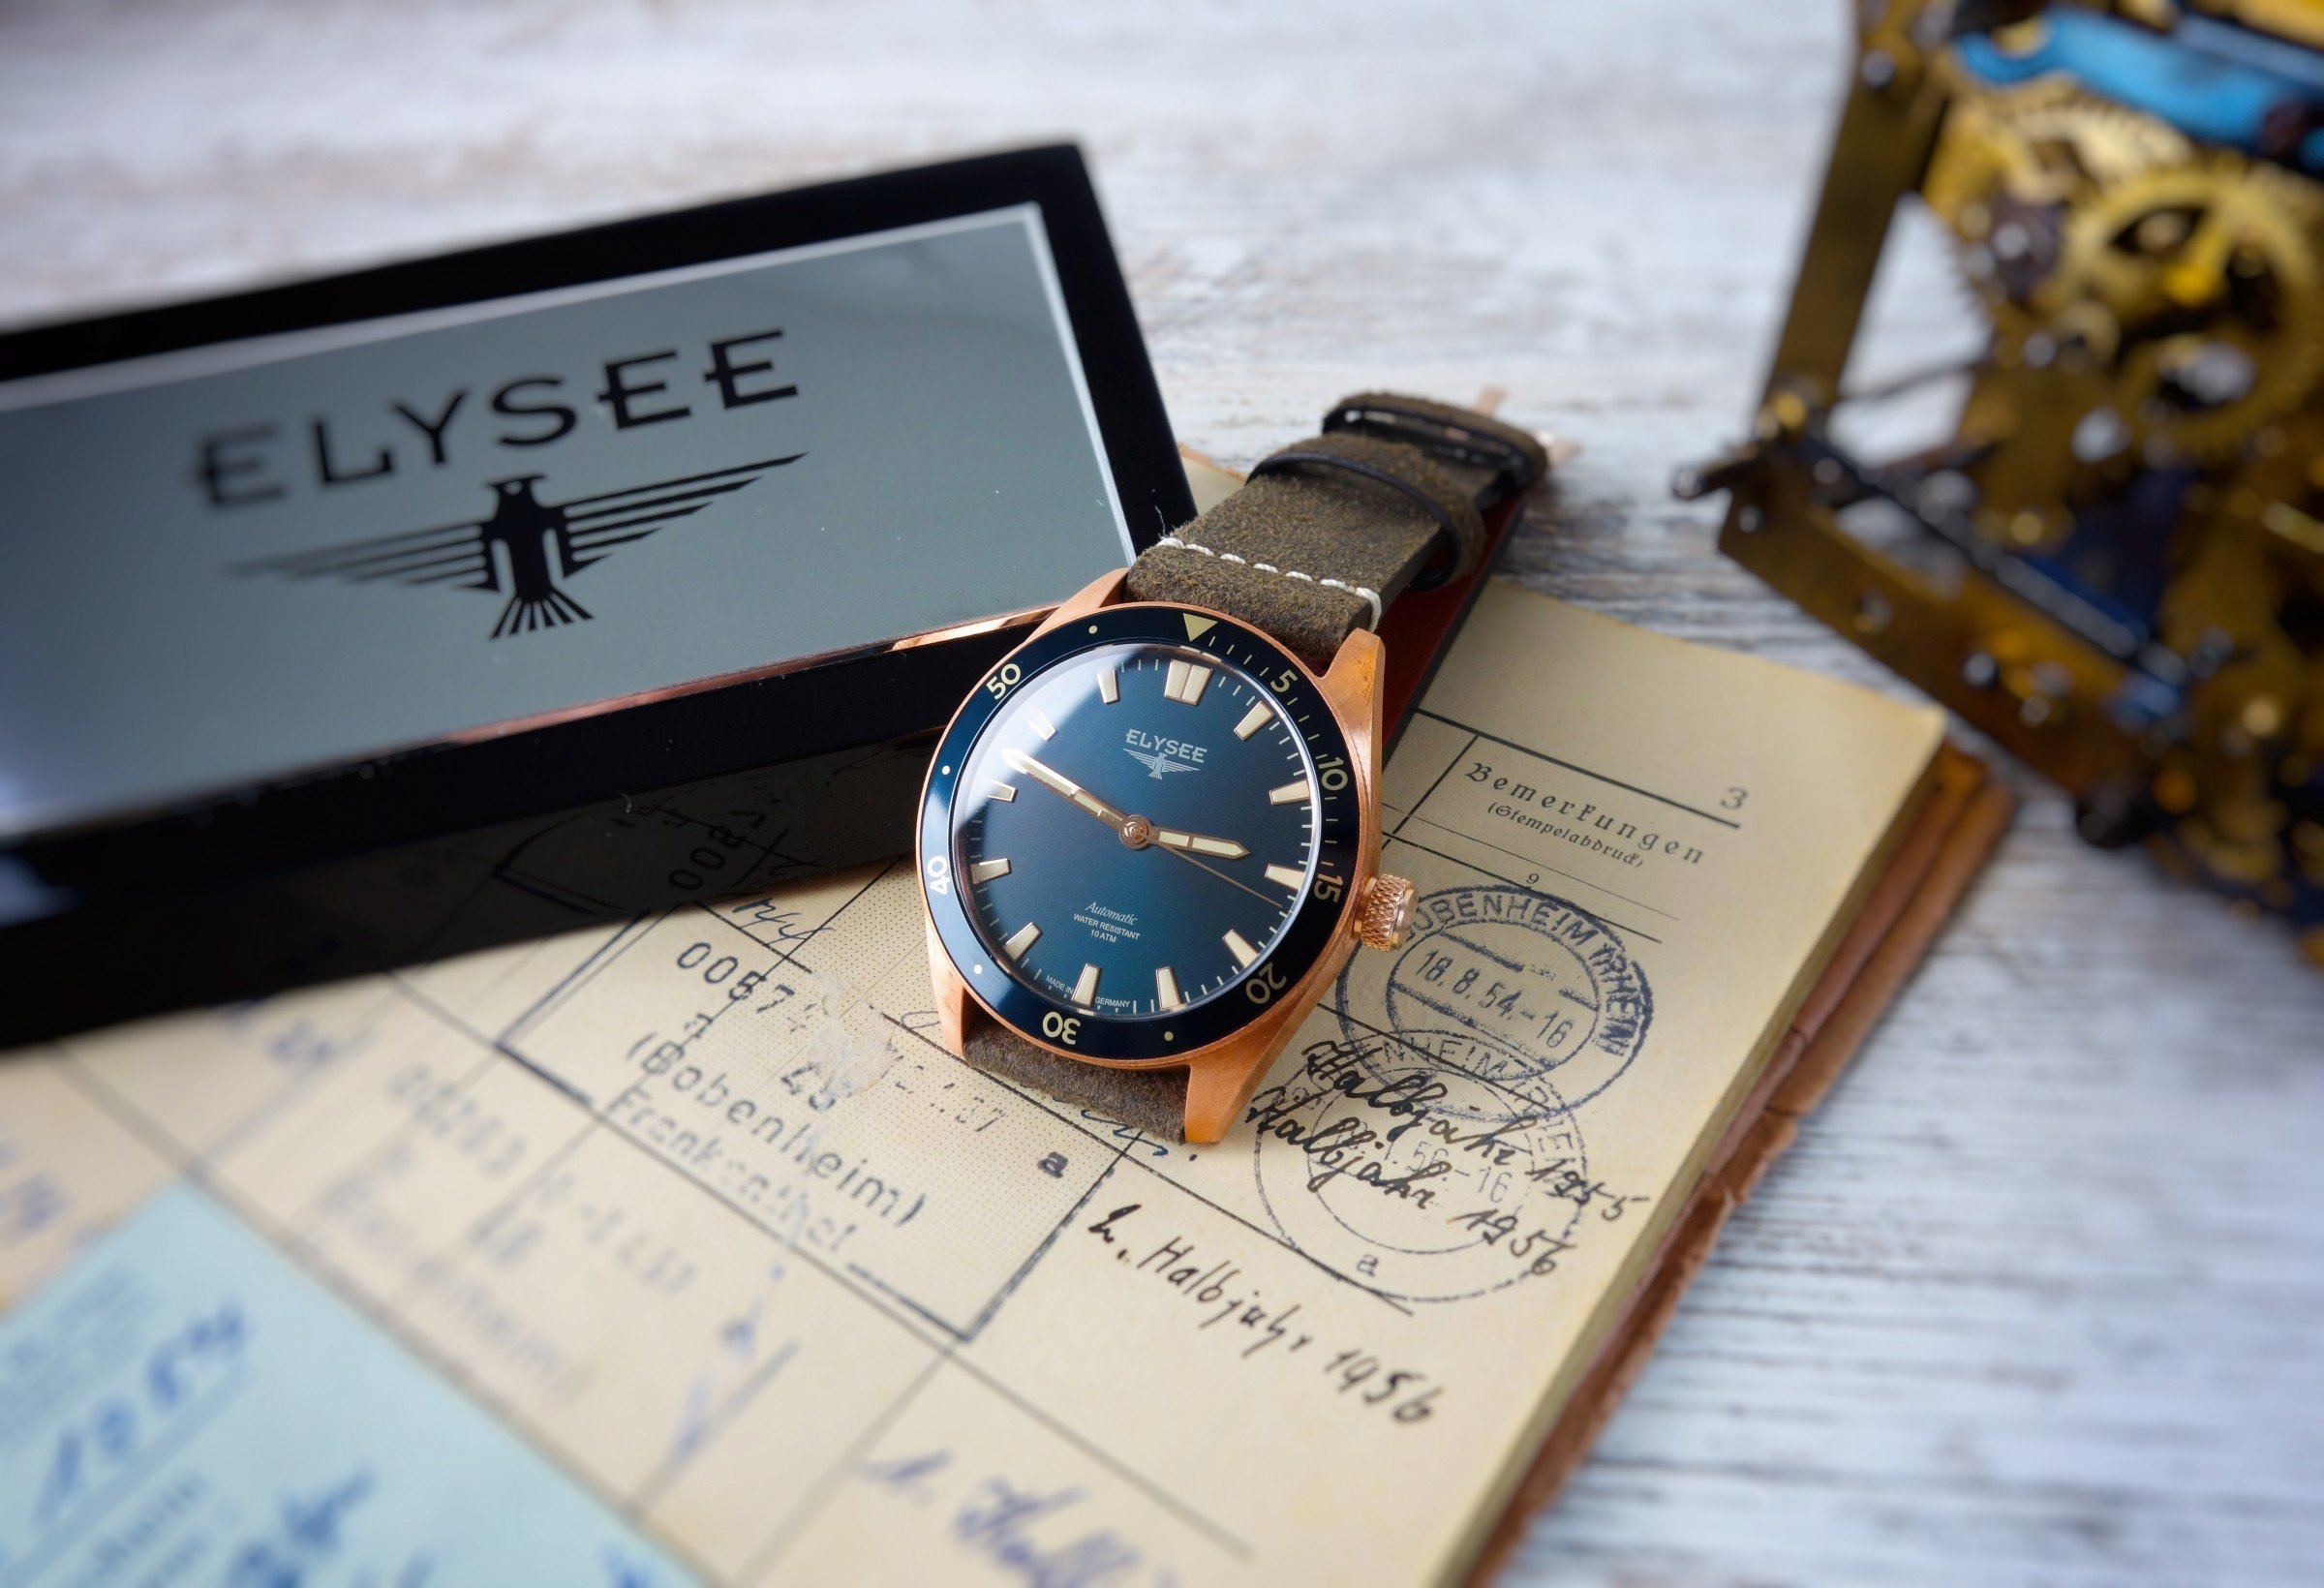 ELYSEE Bronze Automatic